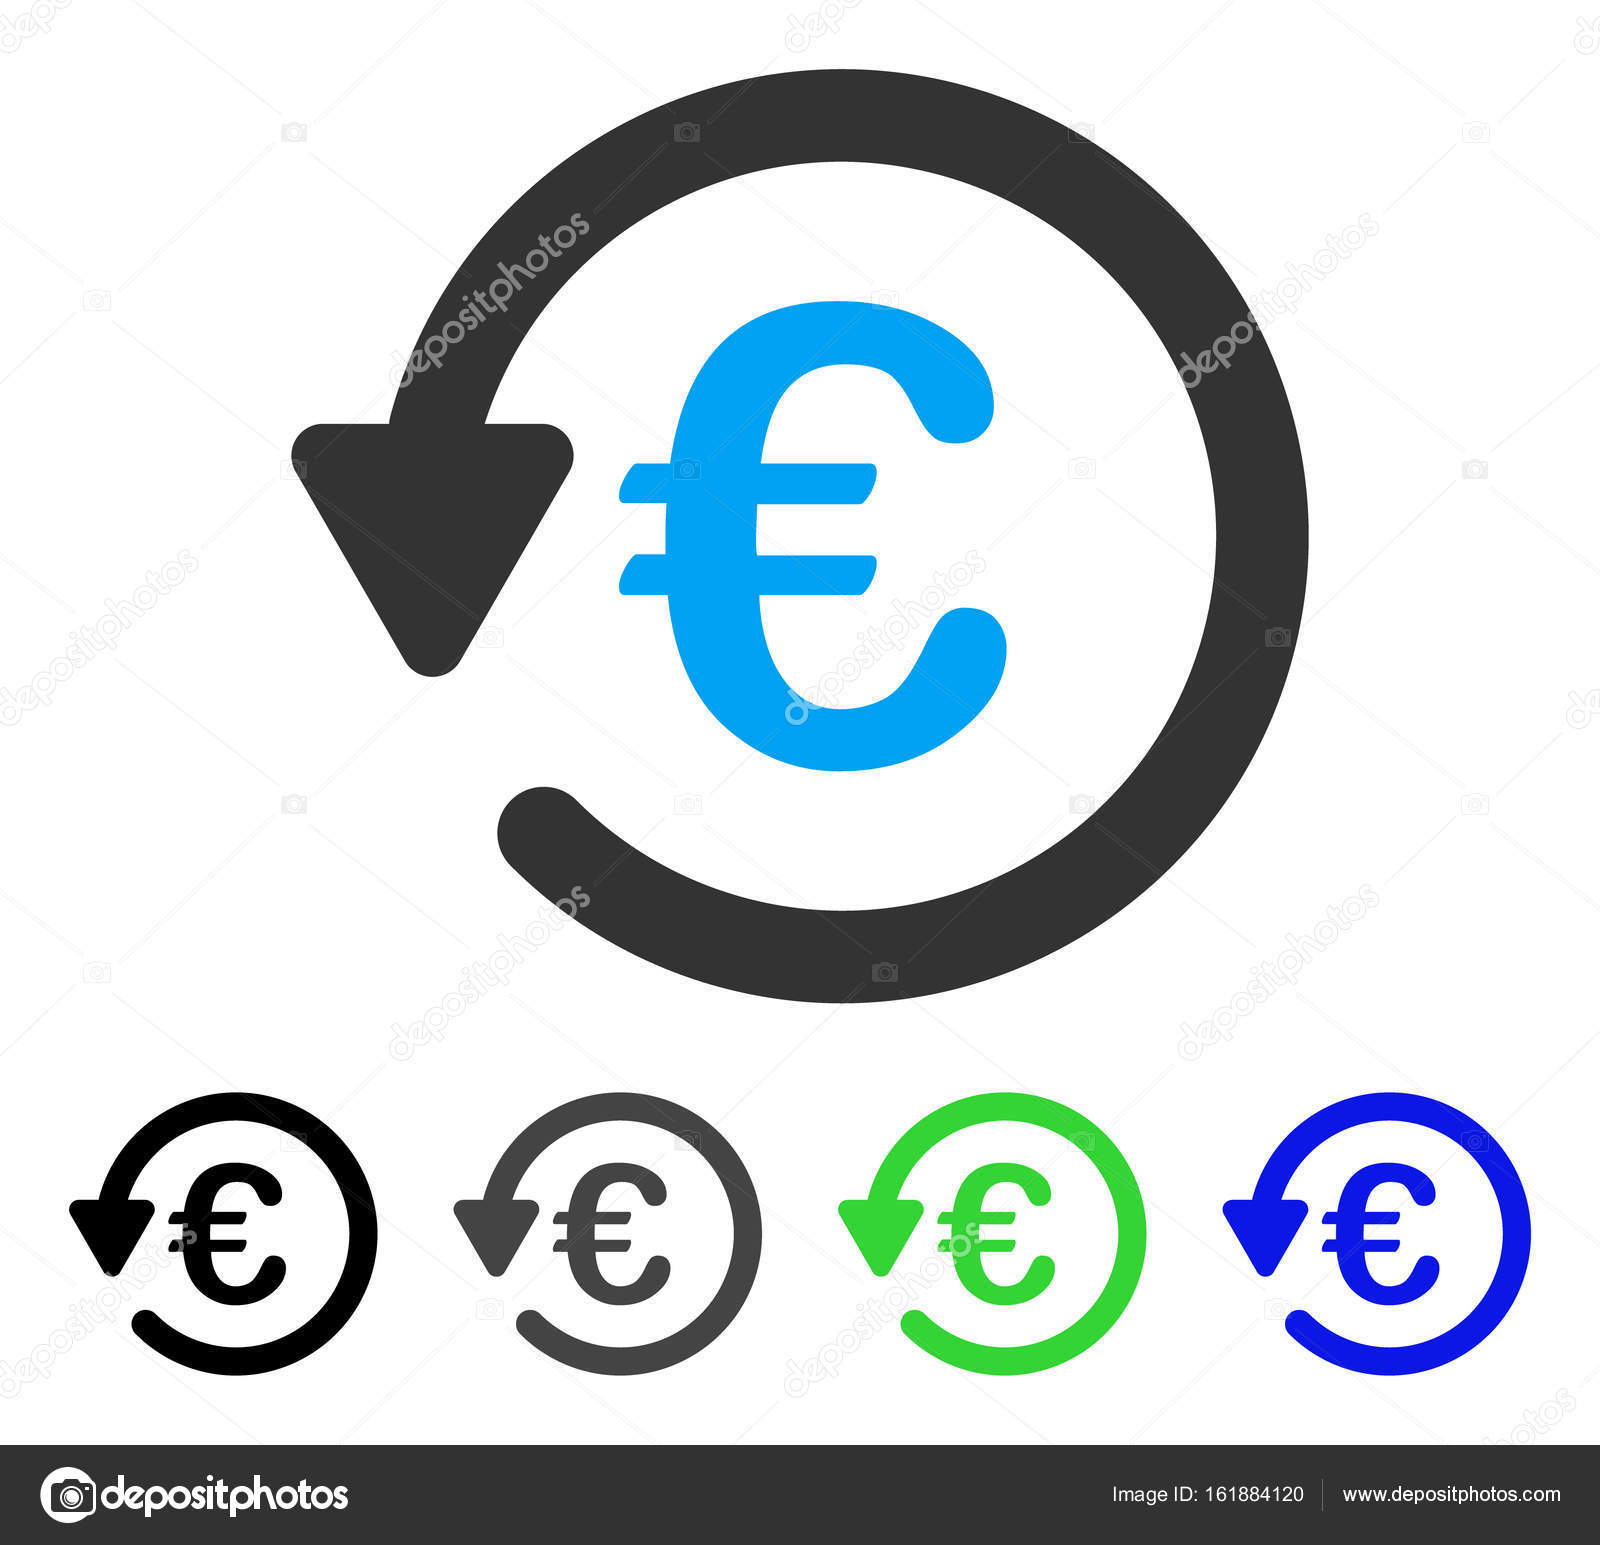 Colored Euro rebate gray, black, blue, green icon versions. Flat icon style  for graphic design. — Vector by ahasoft. Find Similar Images